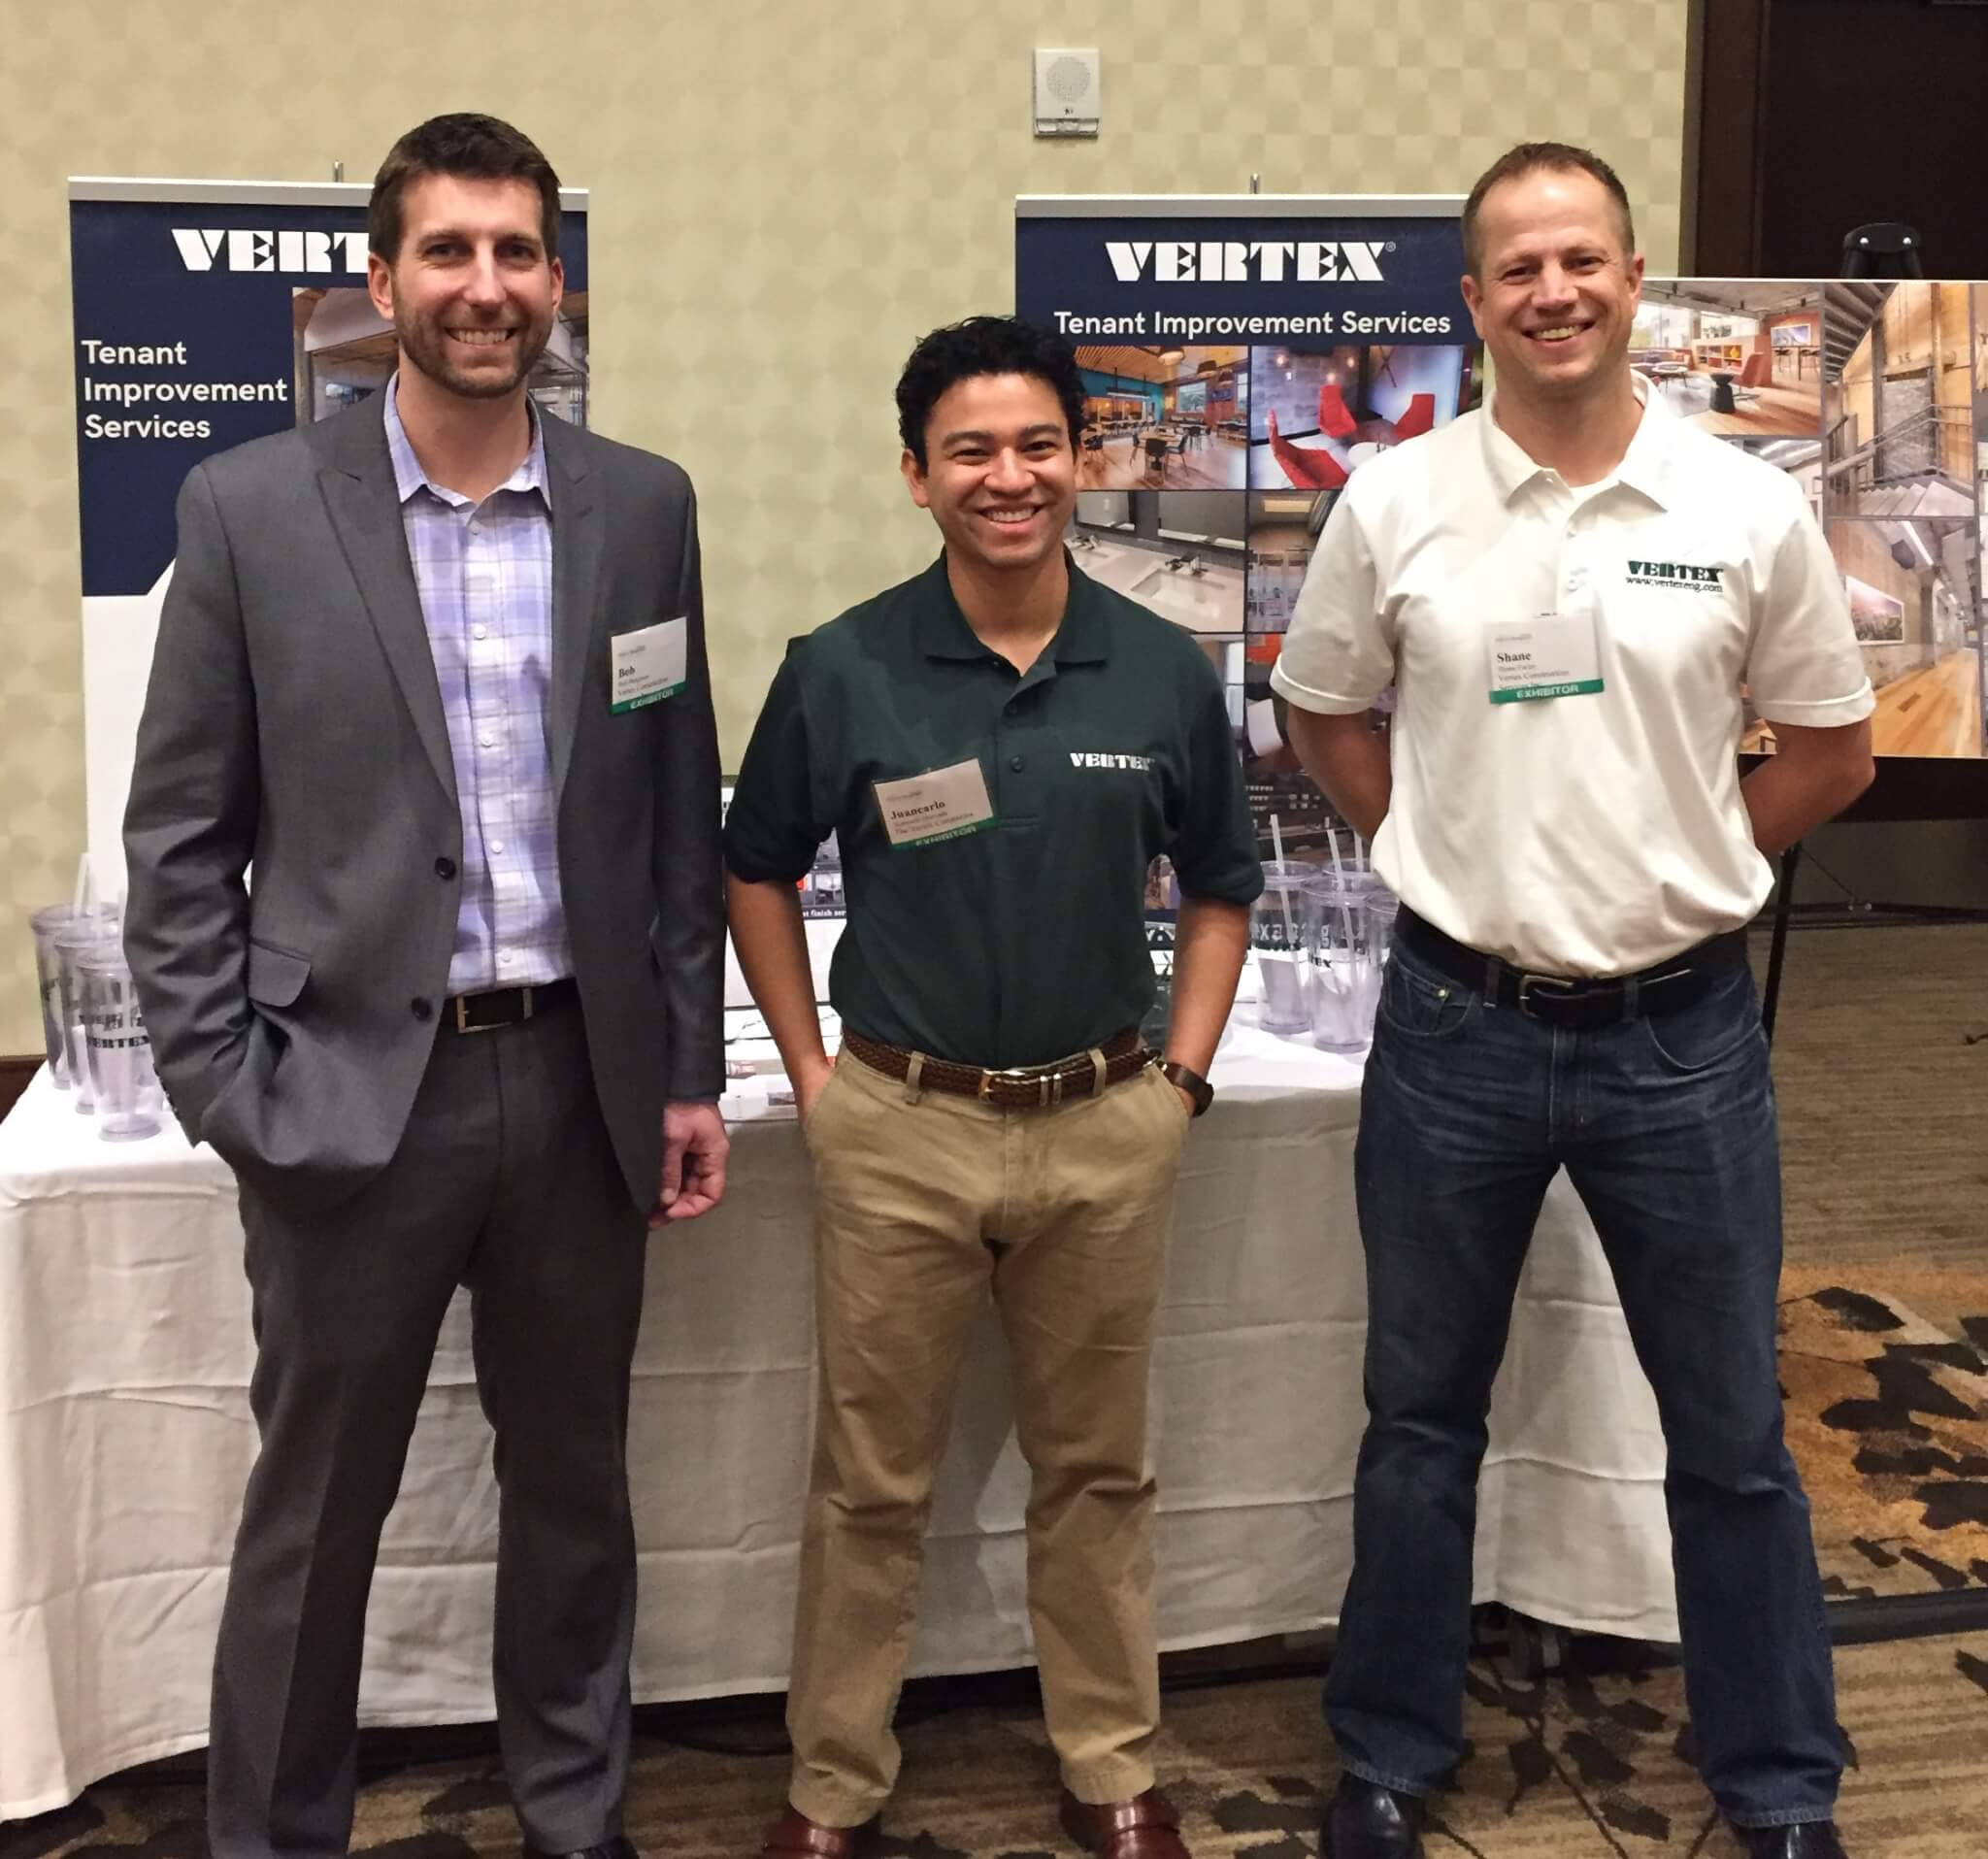 VERTEX At The Colorado Real Estate Journal's